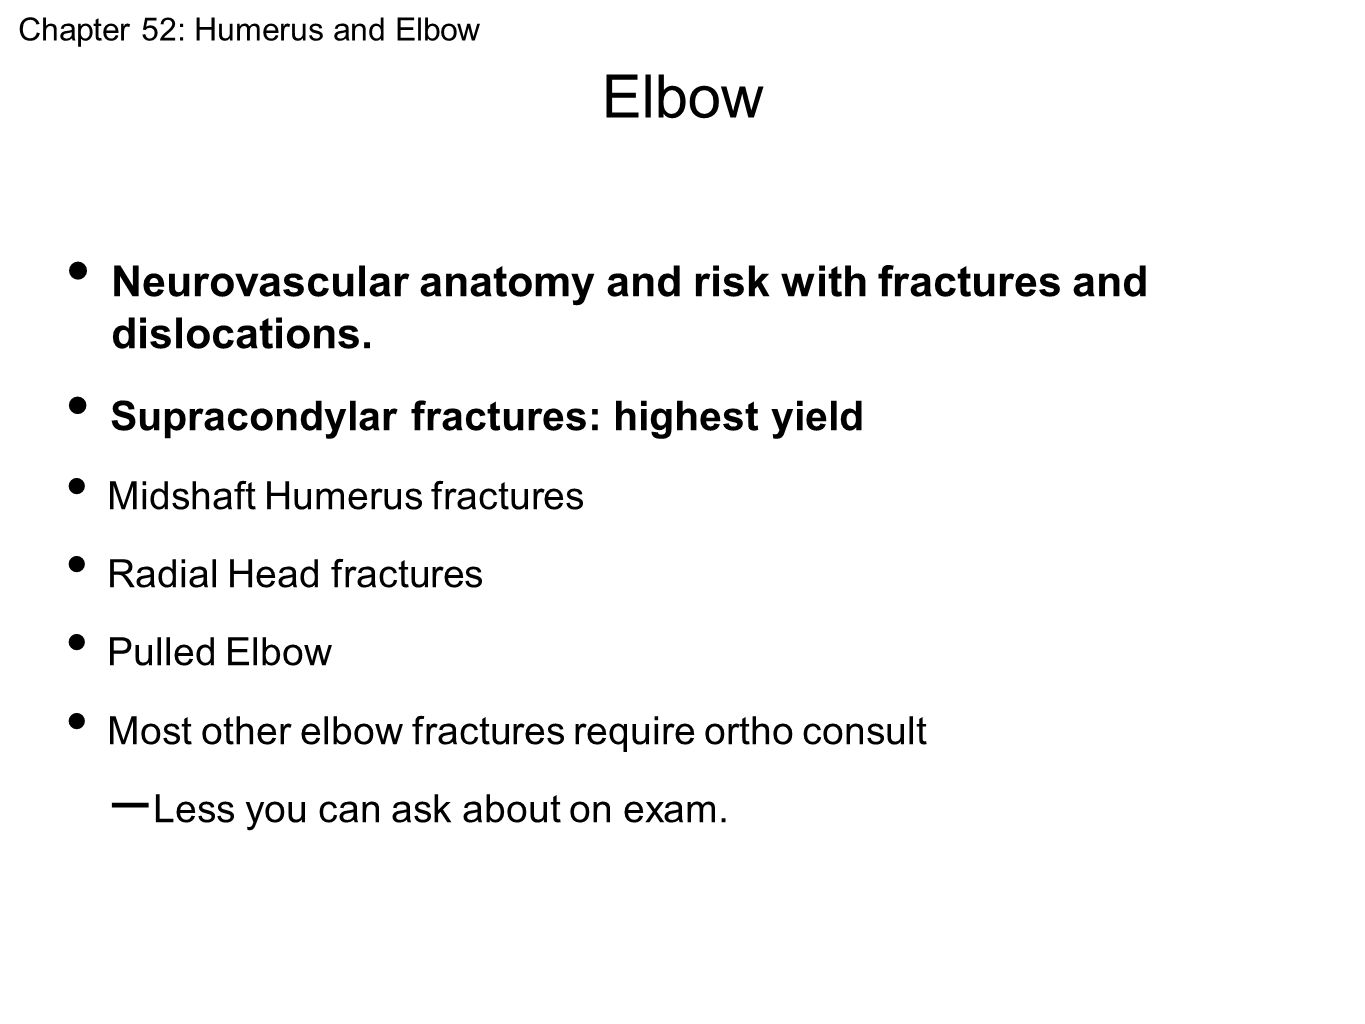 Elbow Neurovascular anatomy and risk with fractures and dislocations. Supracondylar fractures: highest yield Midshaft Humerus fractures Radial Head fr